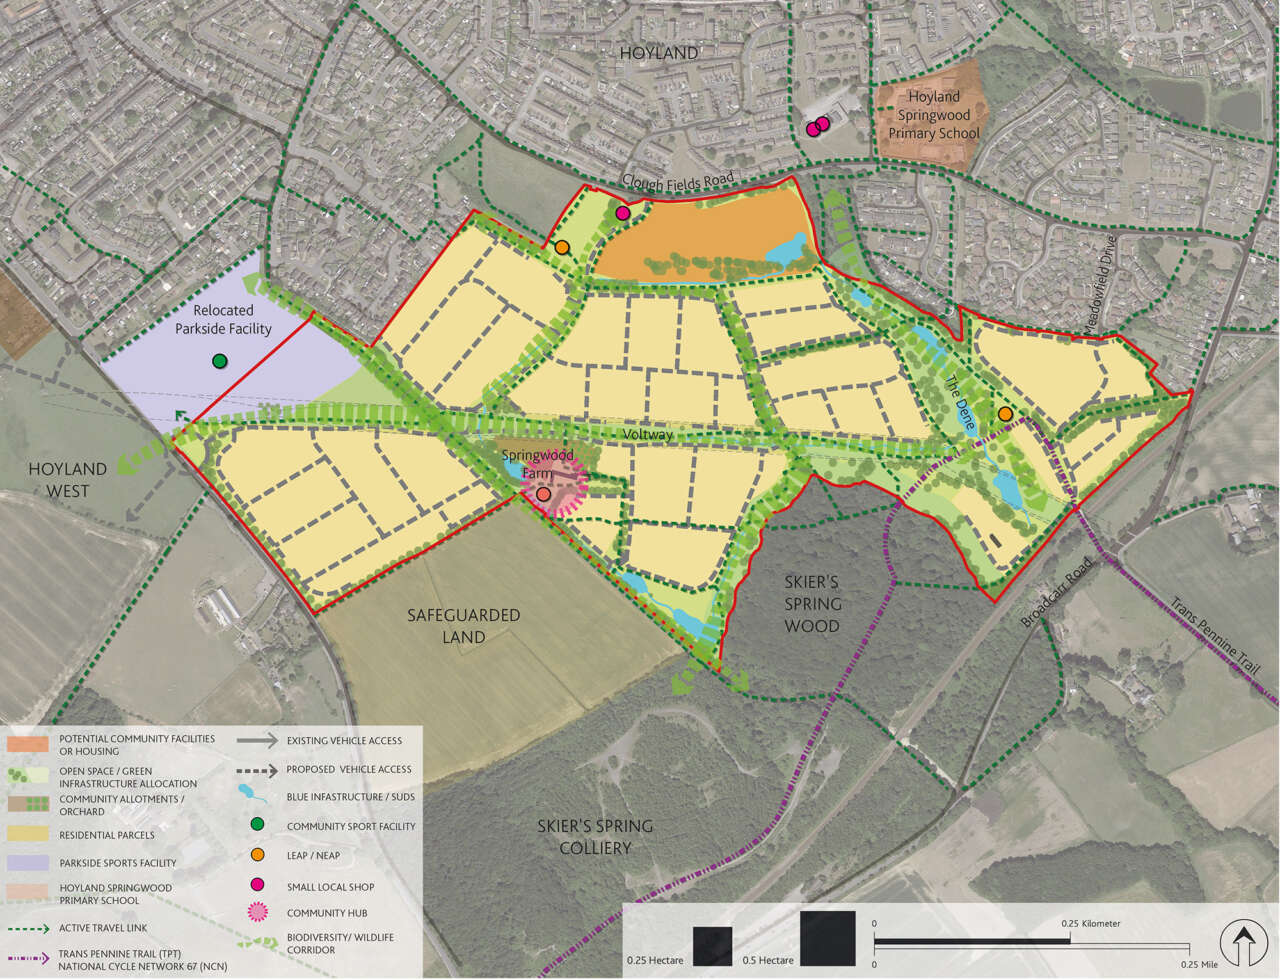 Hoyland South and Royston Masterplan Frameworks adopted by Barnsley council